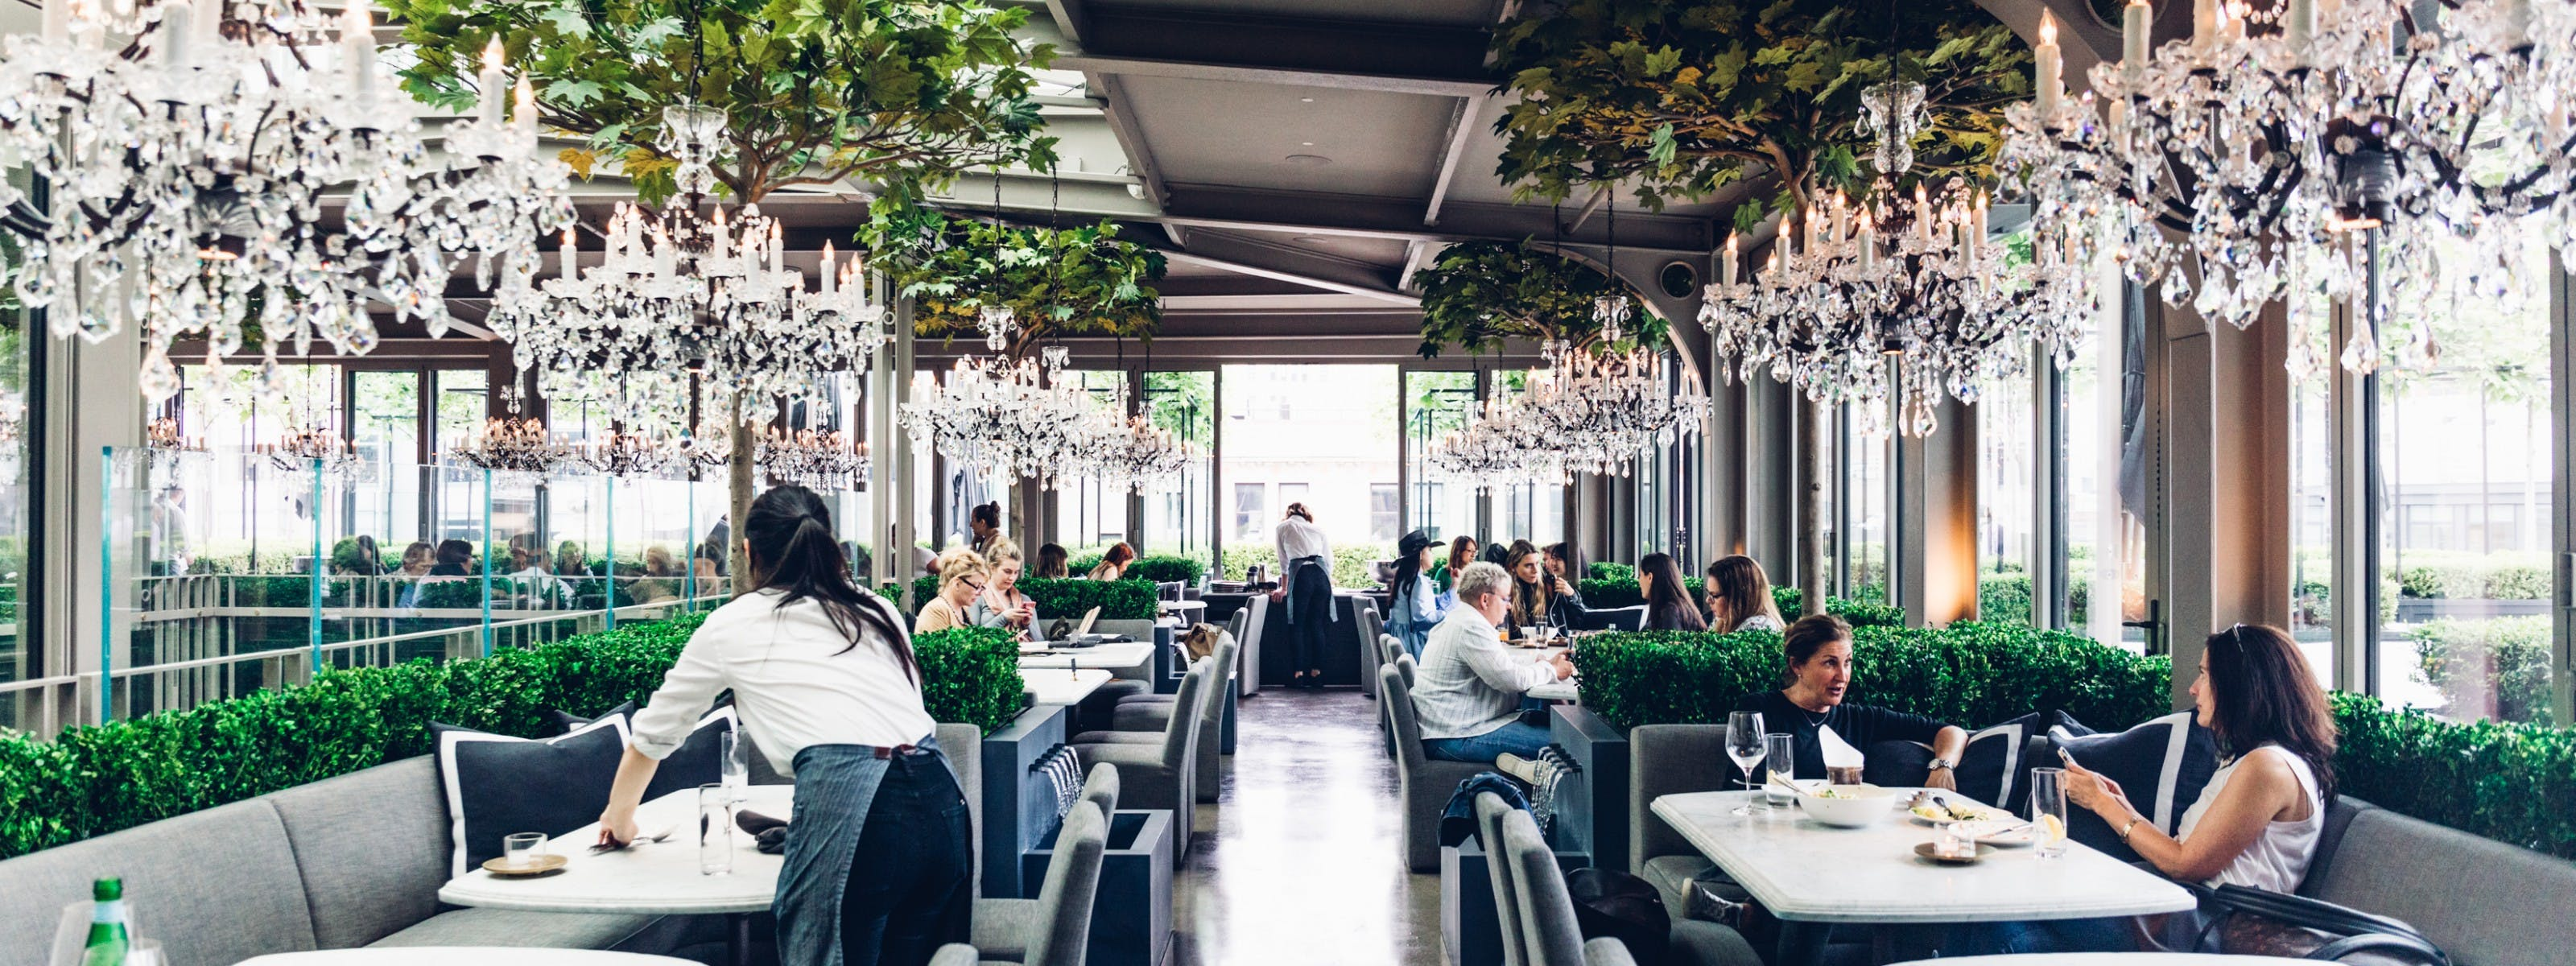 Rh Rooftop Restaurant Meatpacking District New York The Infatuation